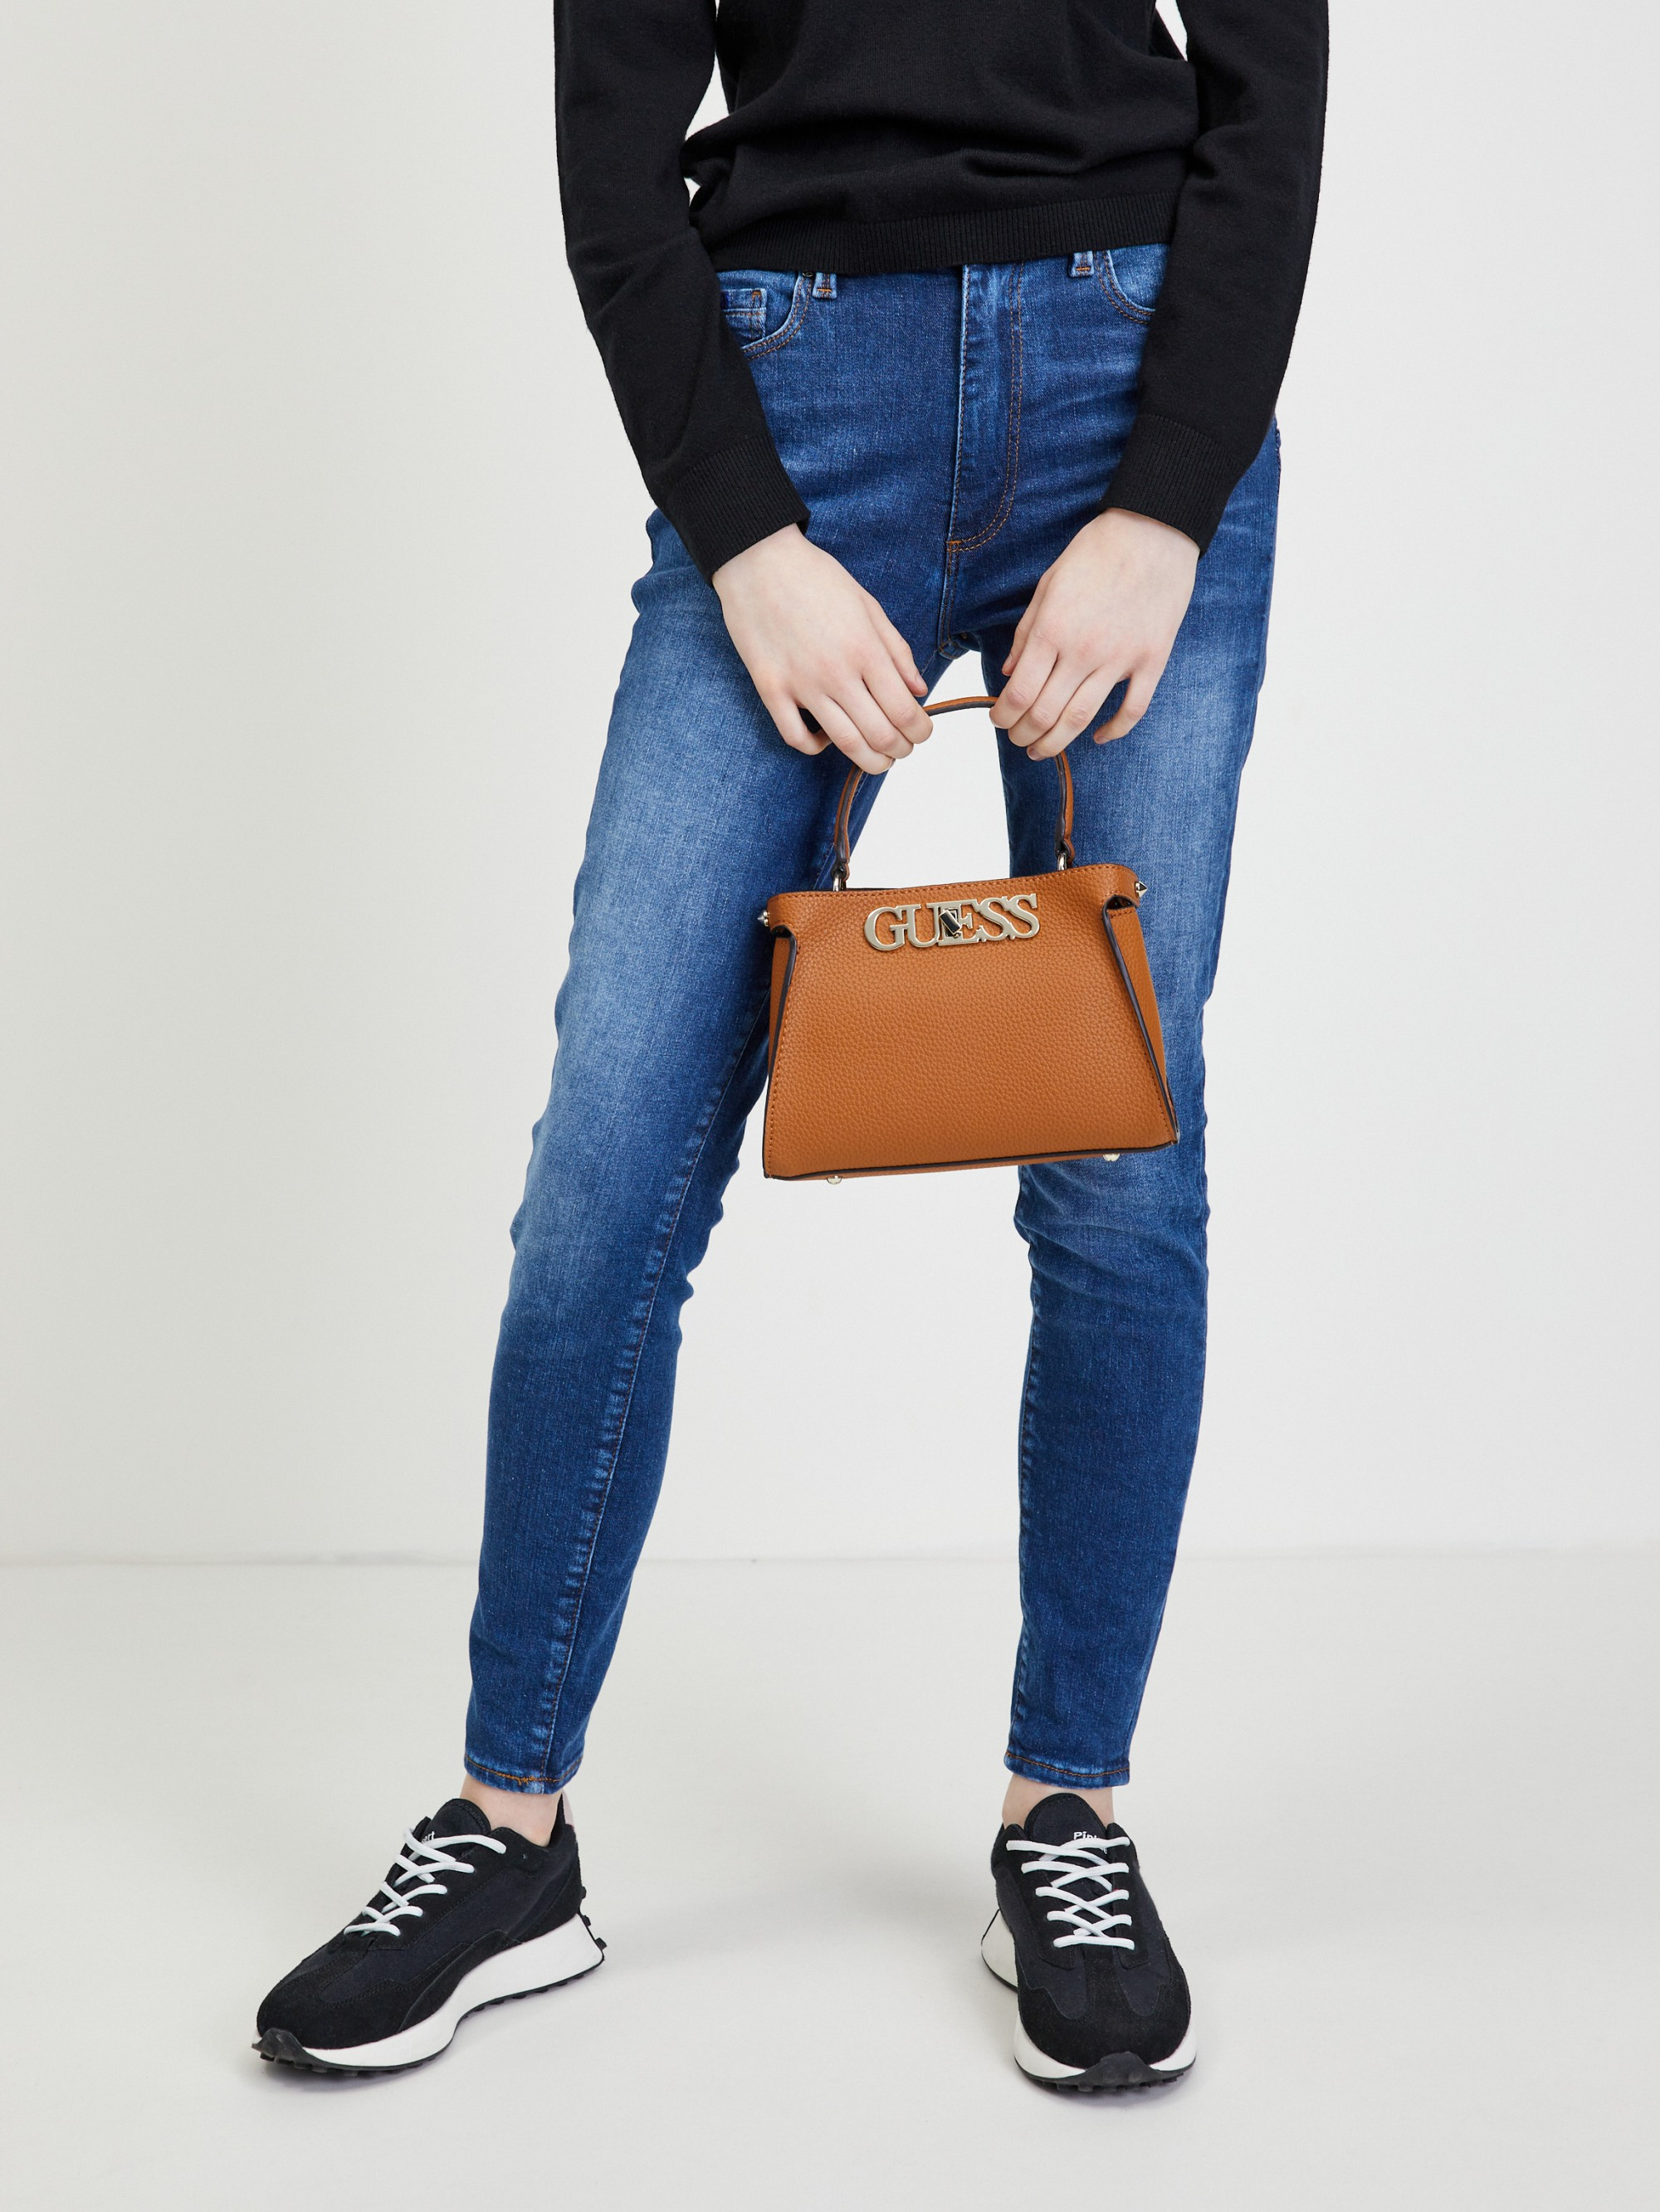 Guess brązowy torebka Uptown Chic Small